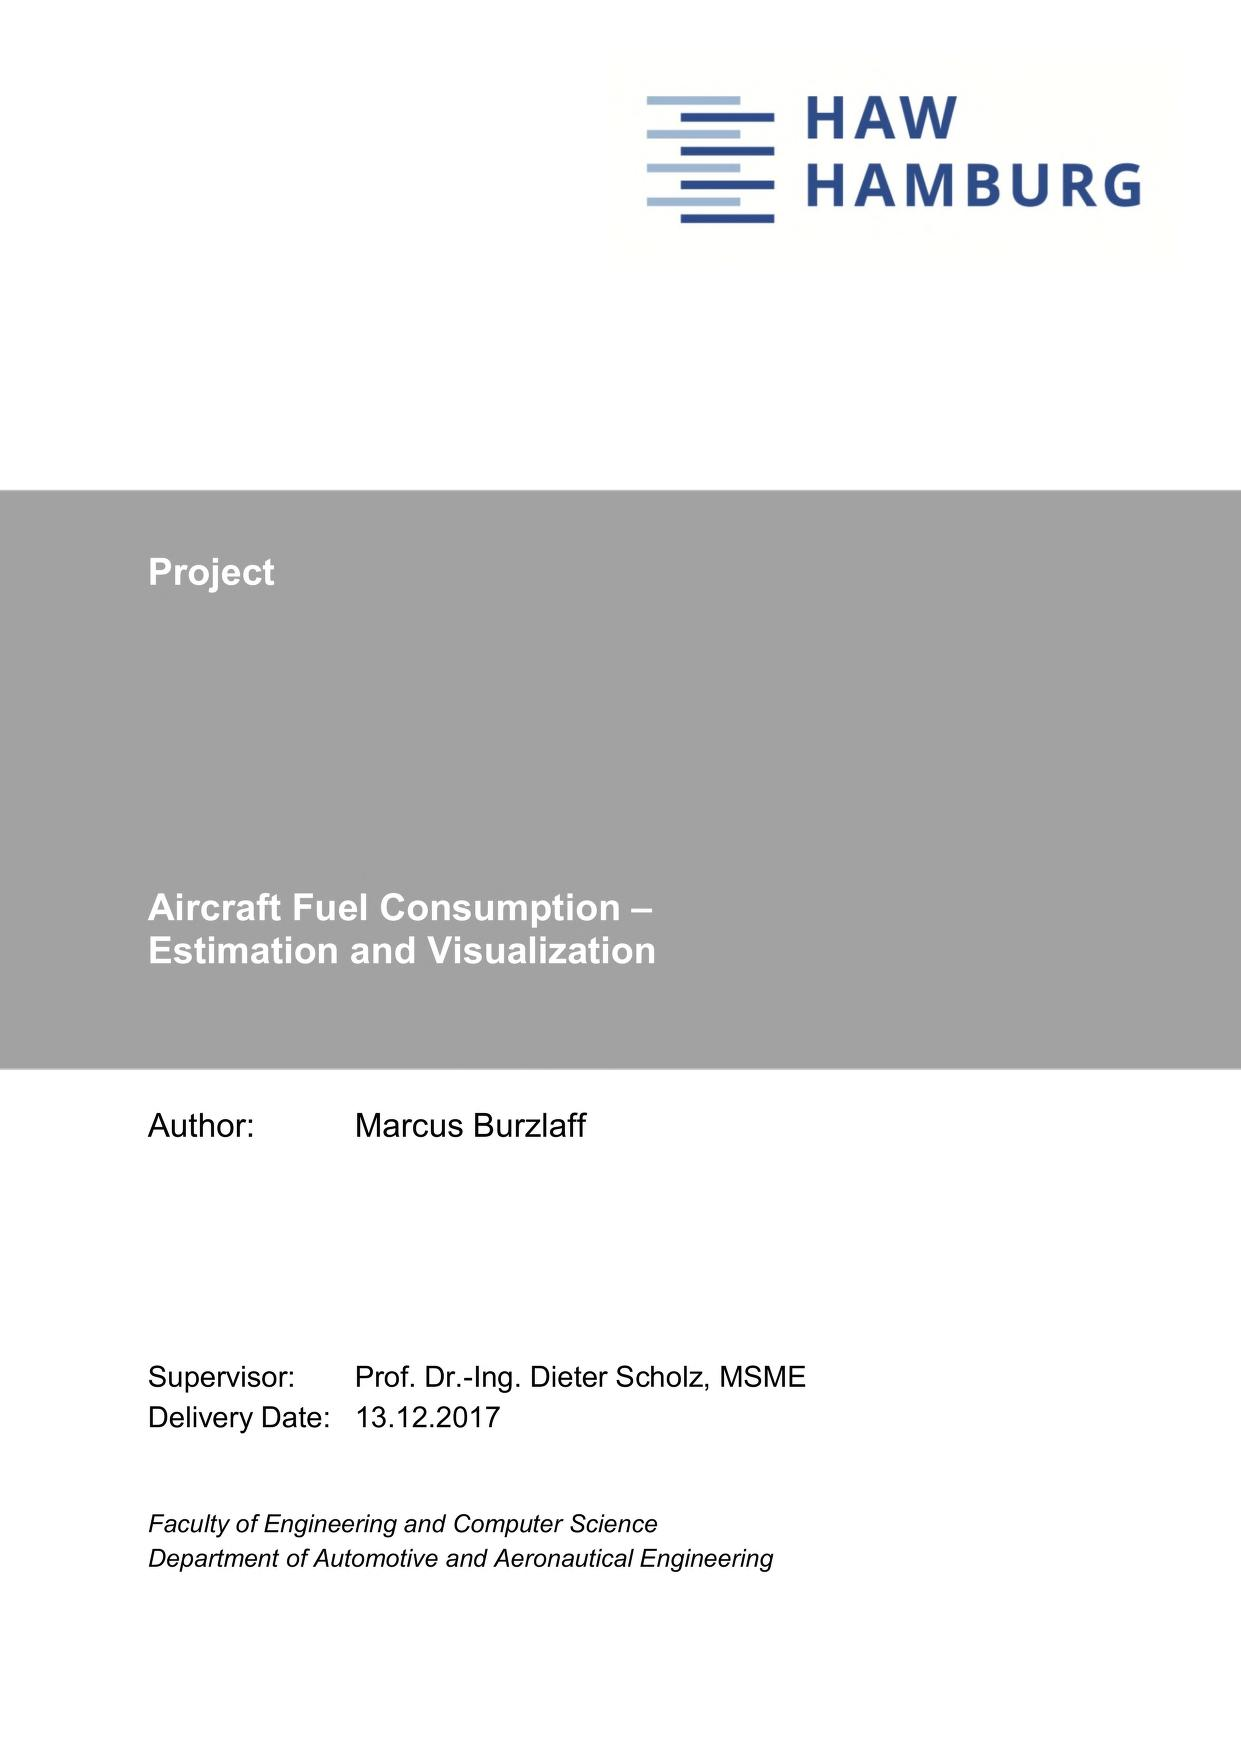 Thumbnail image of Aircraft Fuel Consumption - Estimation and Visualization